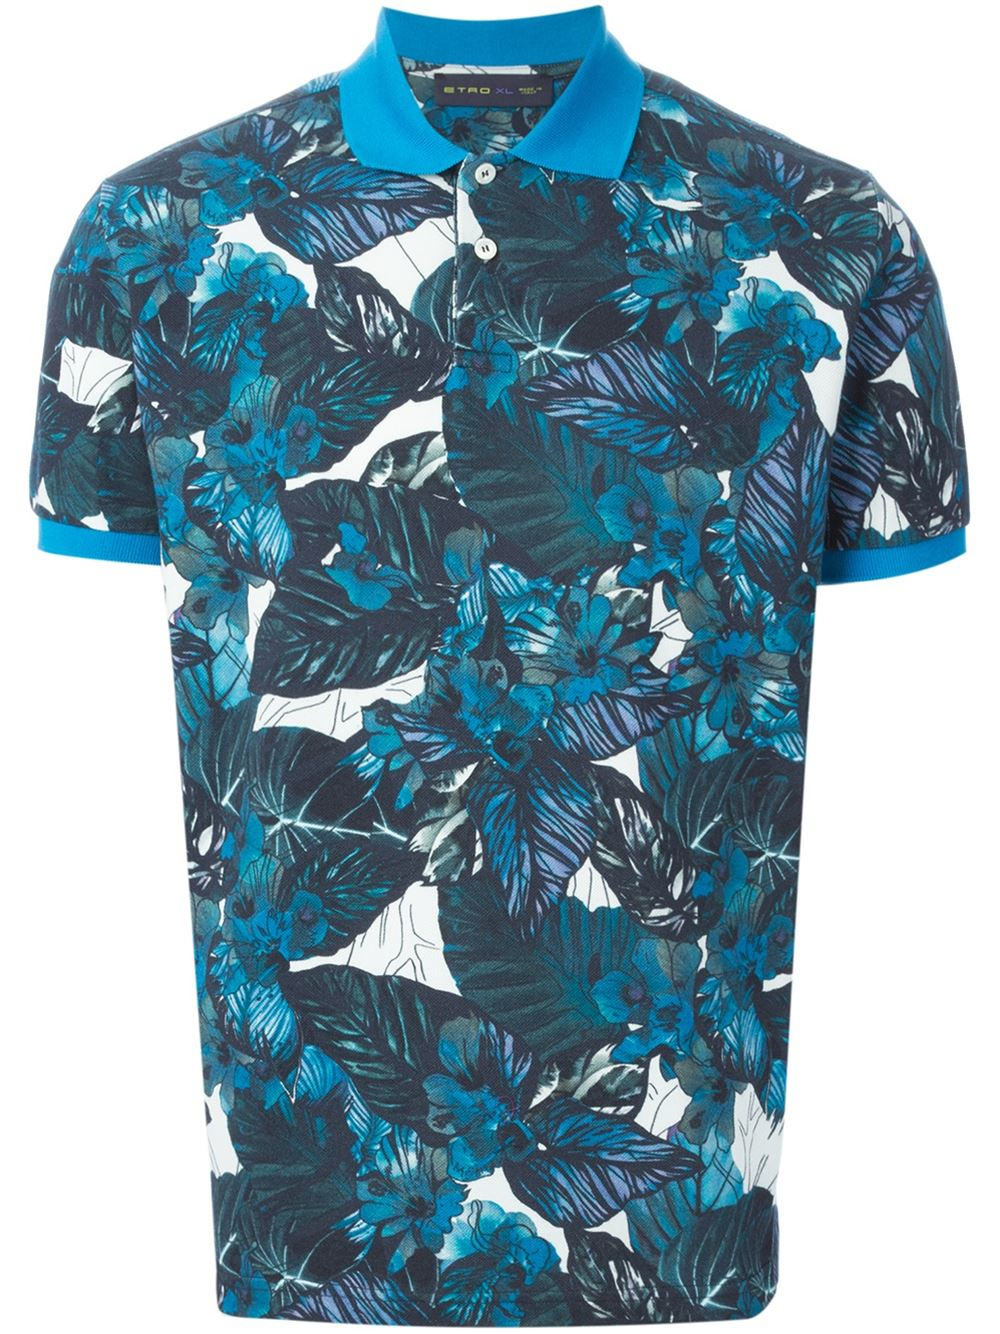 Buy low price, high quality blue floral blouse shirts with worldwide shipping on hereaupy06.gq